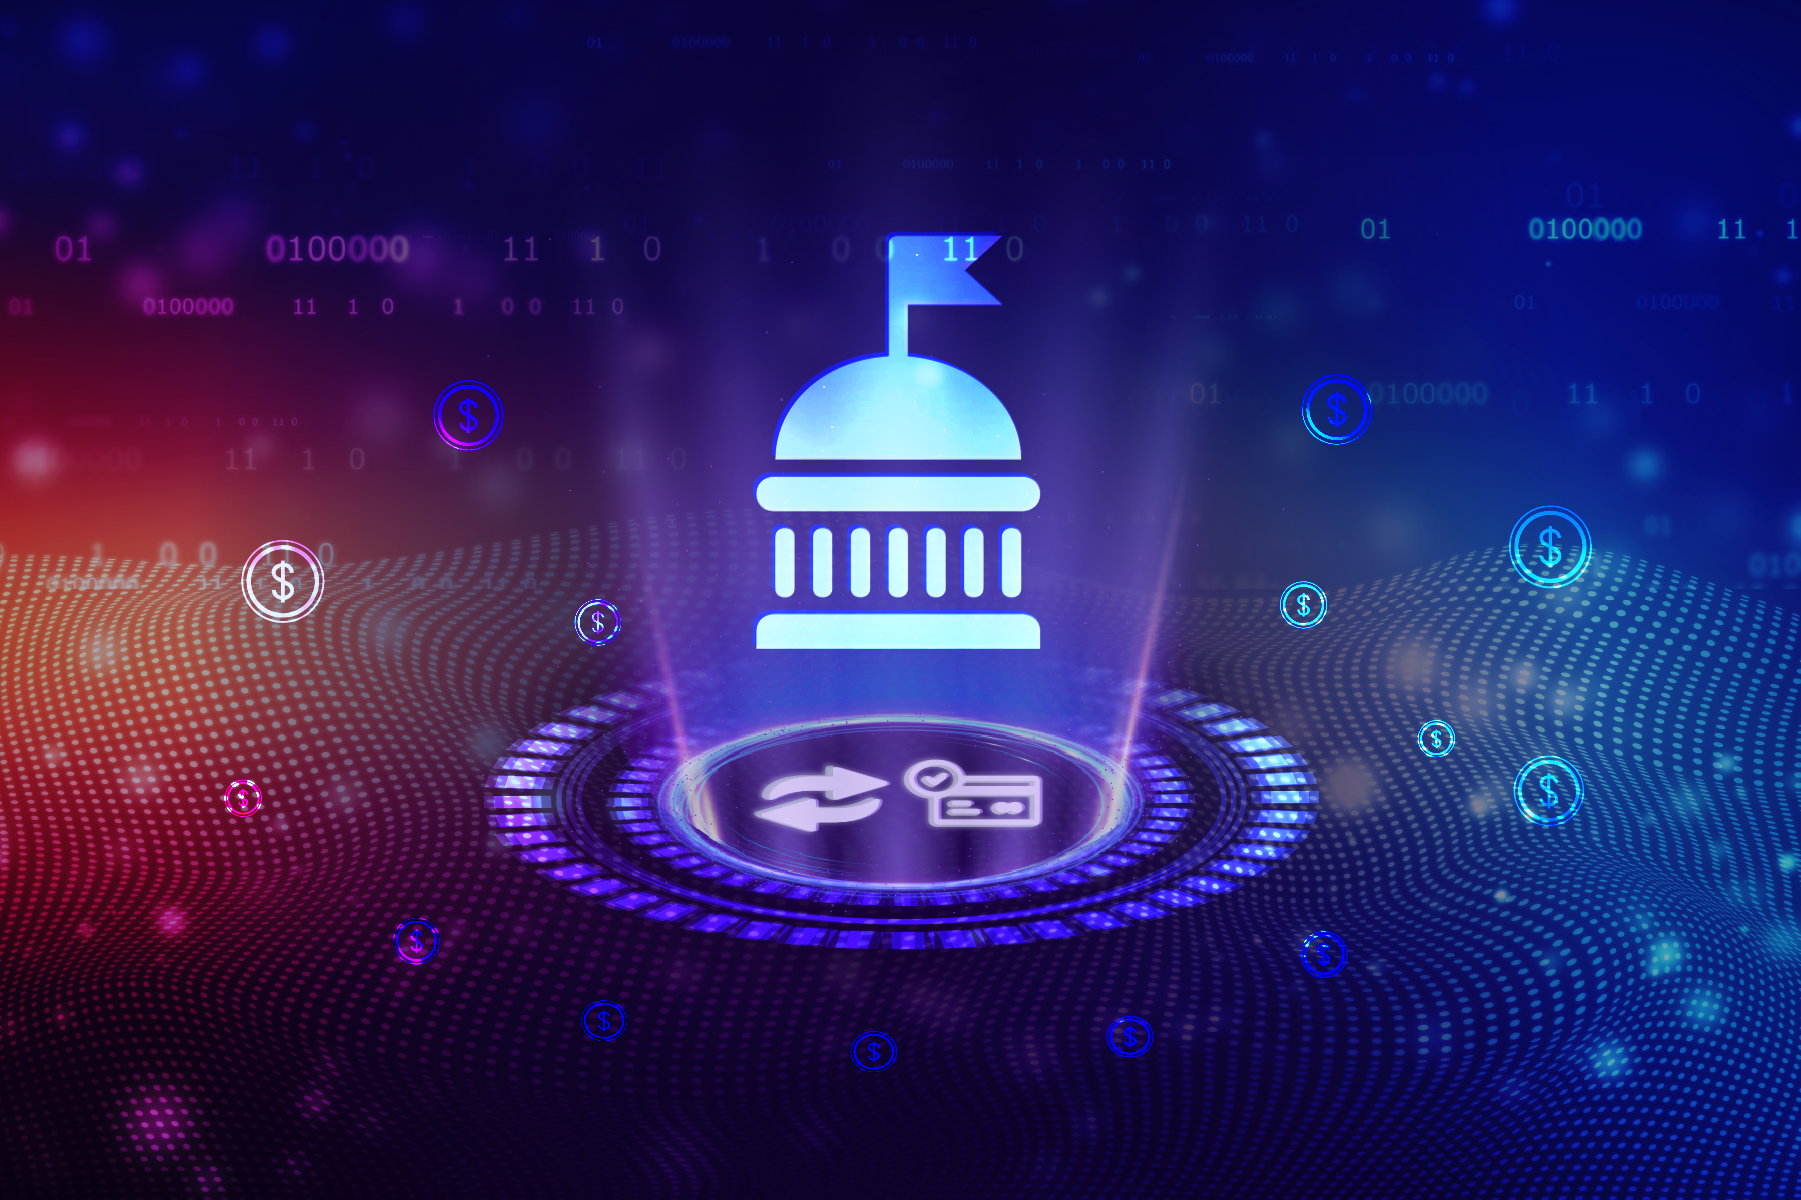 Interoperability for transaction security